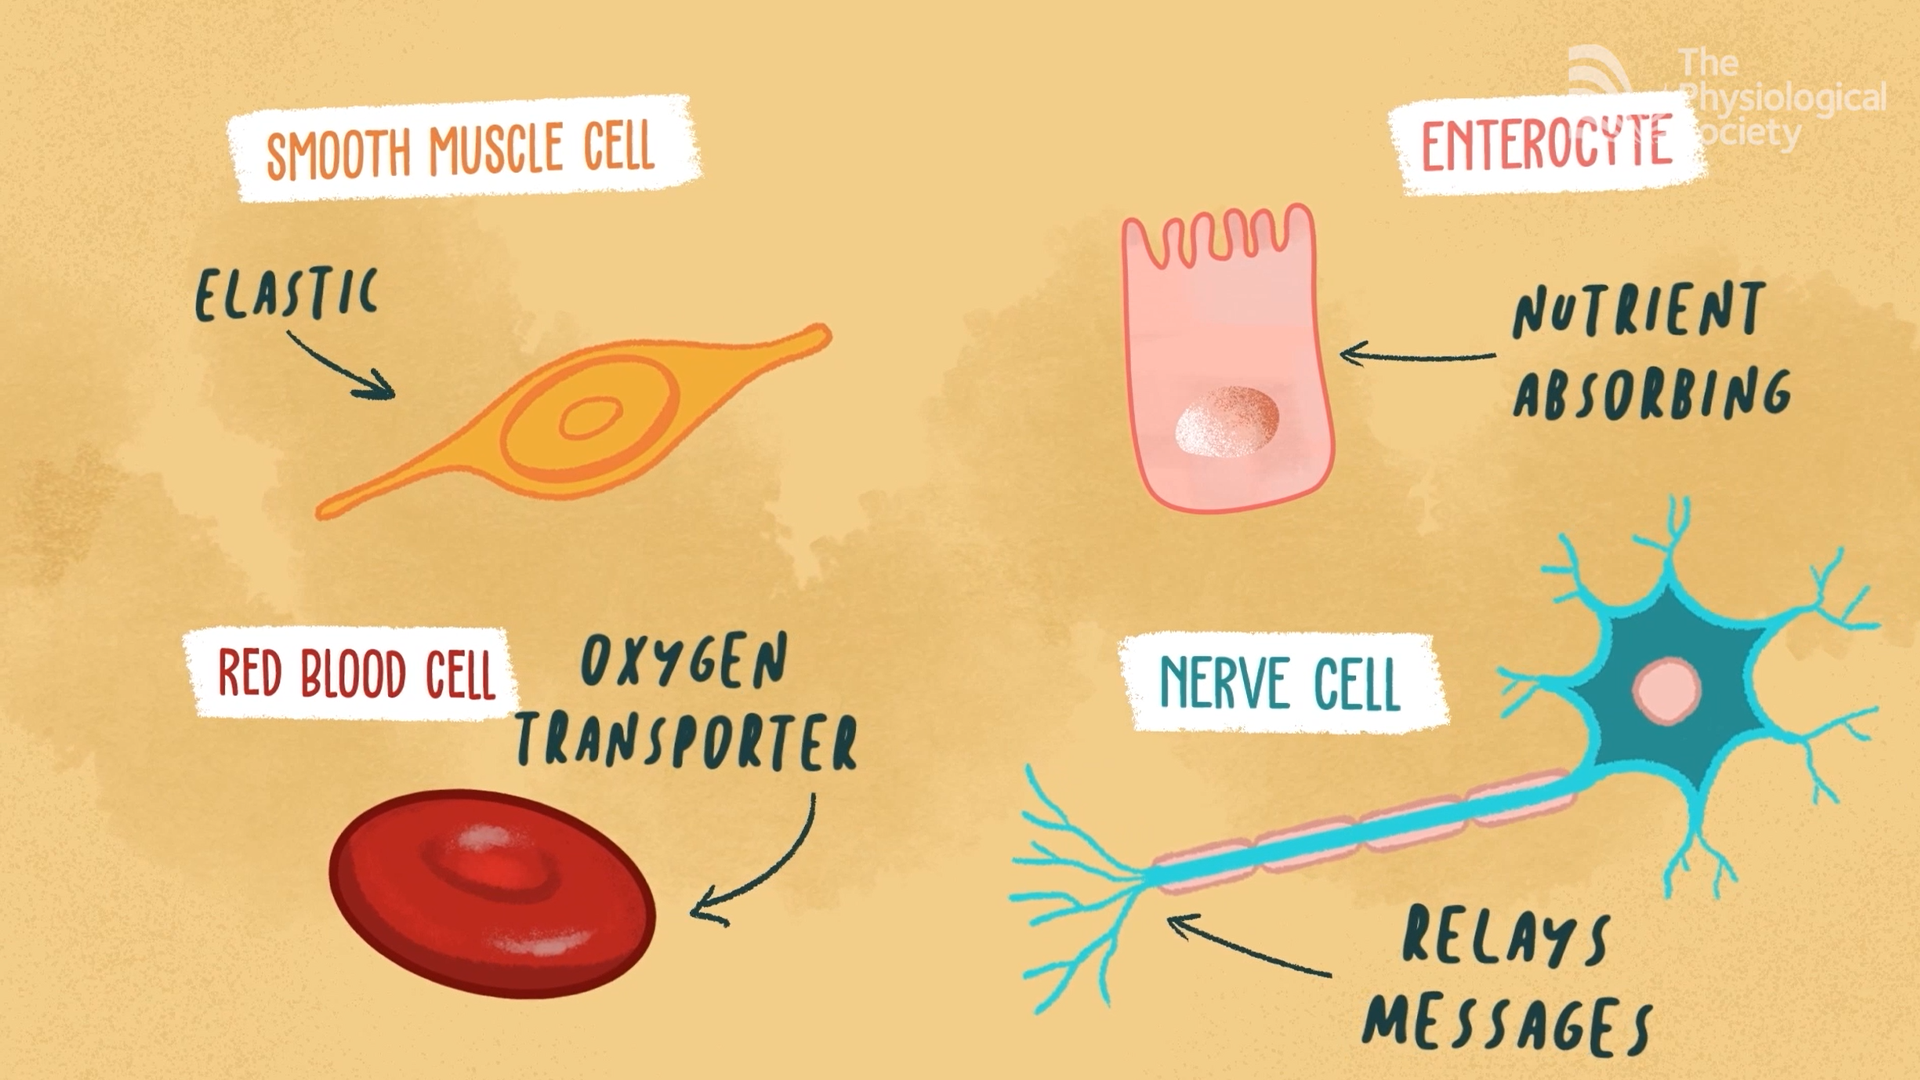 Smooth muscle cell is elastic, a red blood cell is the oxygen transporter, an enterocyte is nutrient absorbing and nerve cells relay messages.